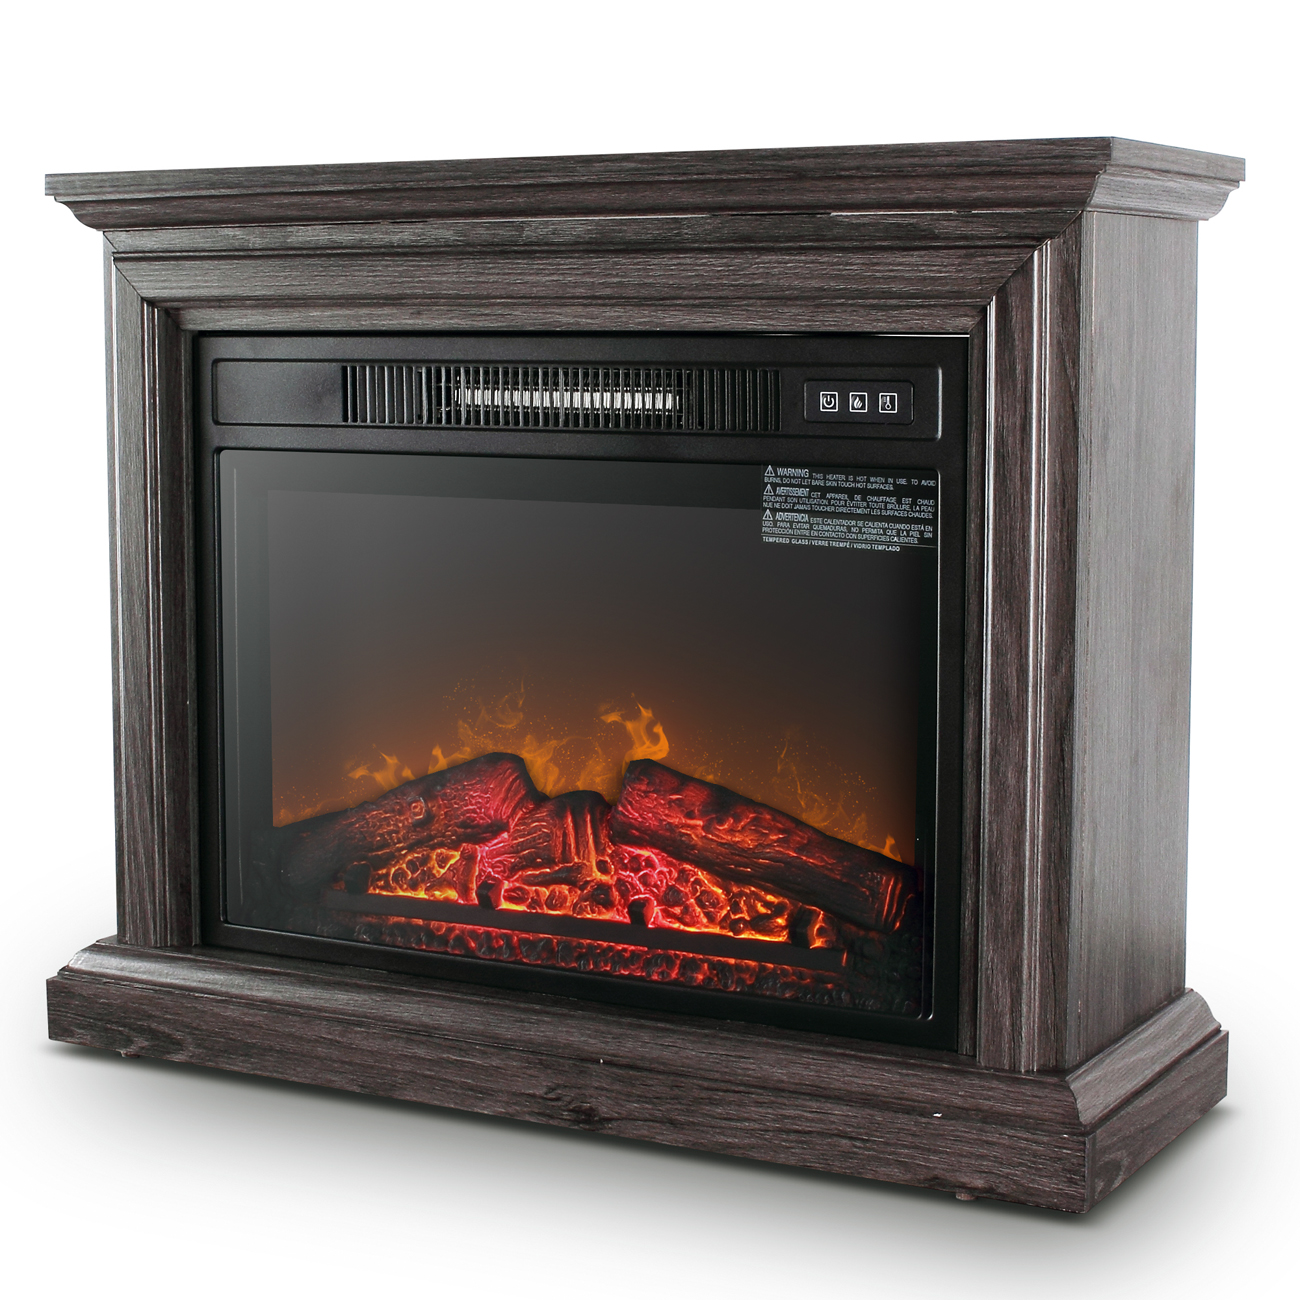 Sports reality show budget with digital inserts for fireplaces